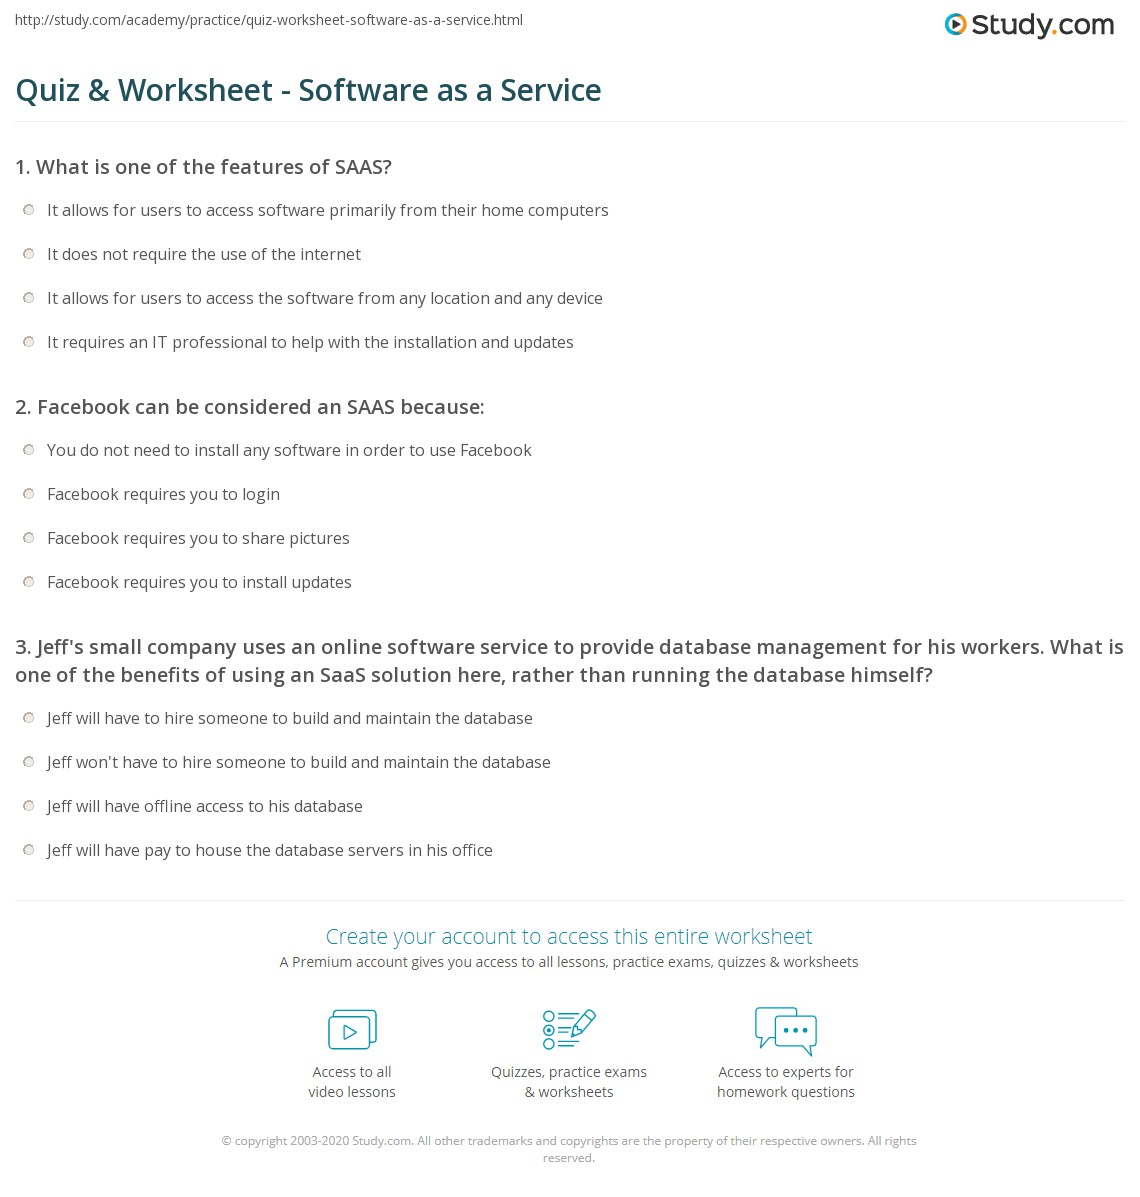 quiz & worksheet - software as a service | study